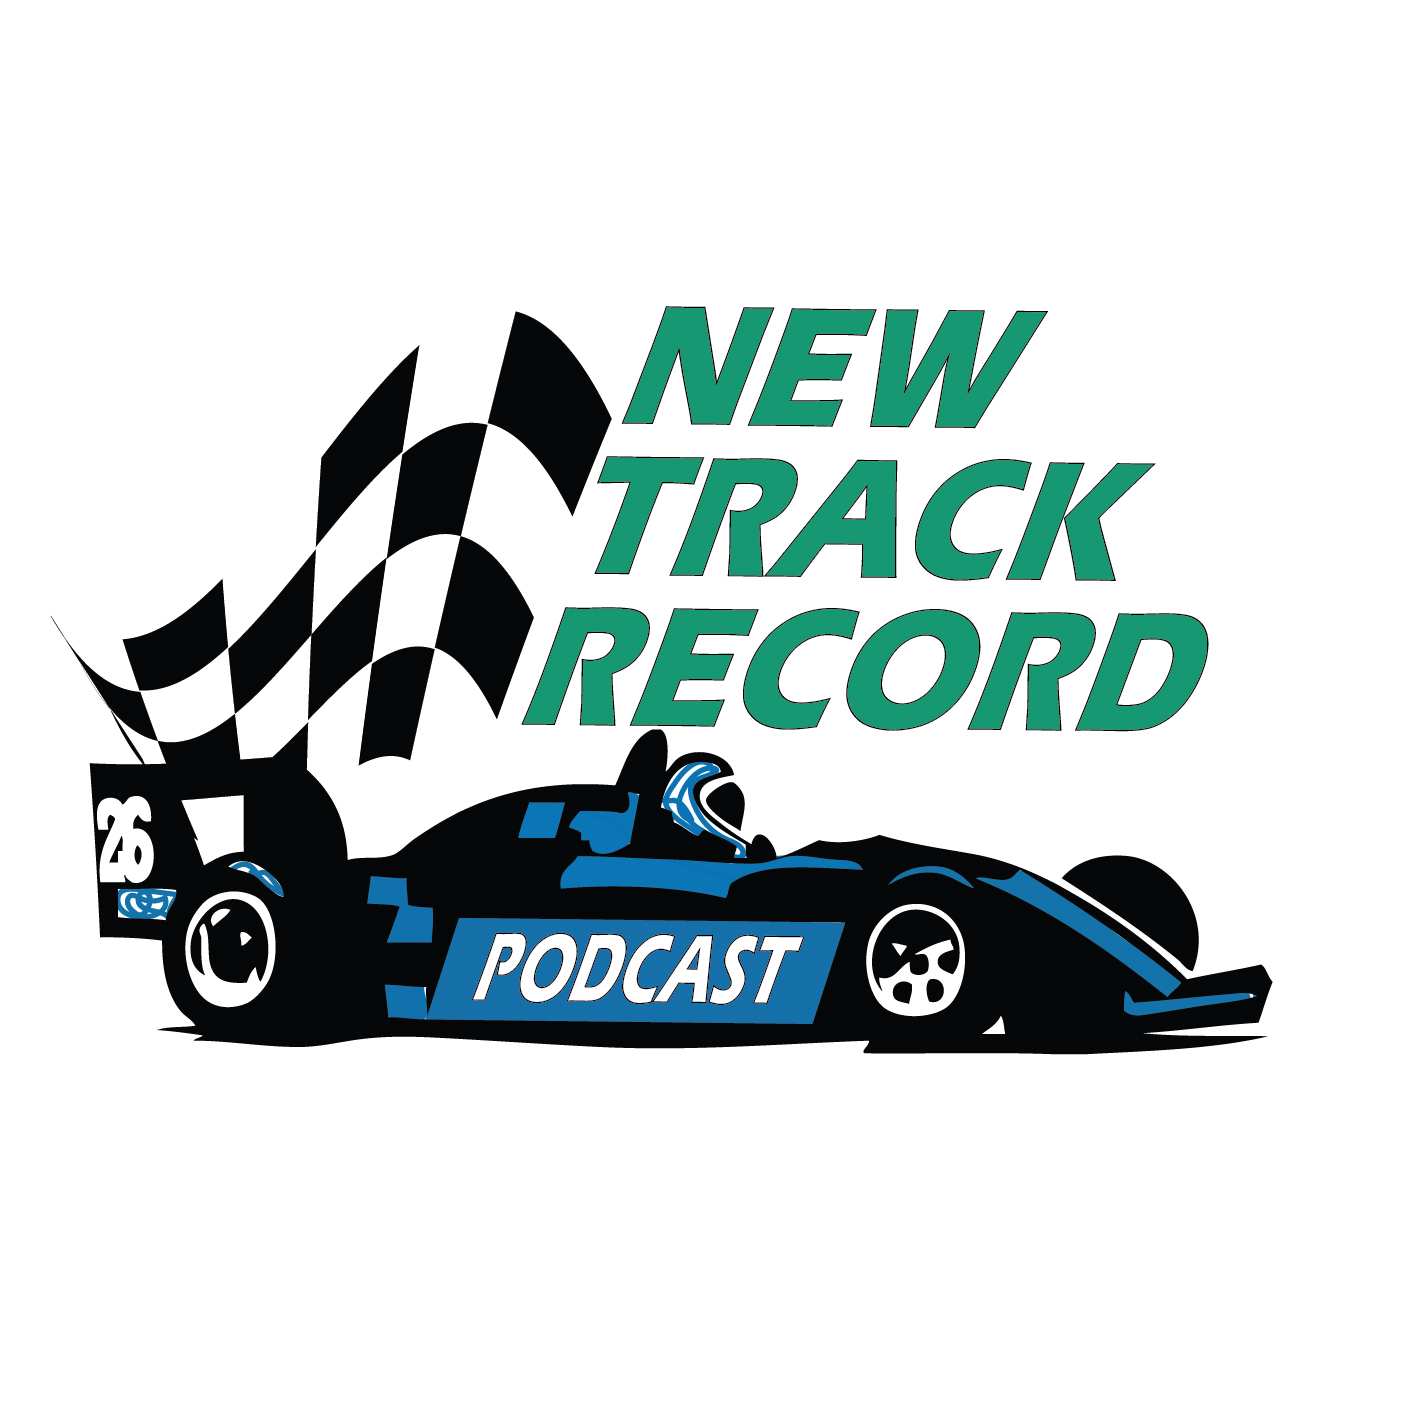 New Track Record Podcast for December 12, 2017